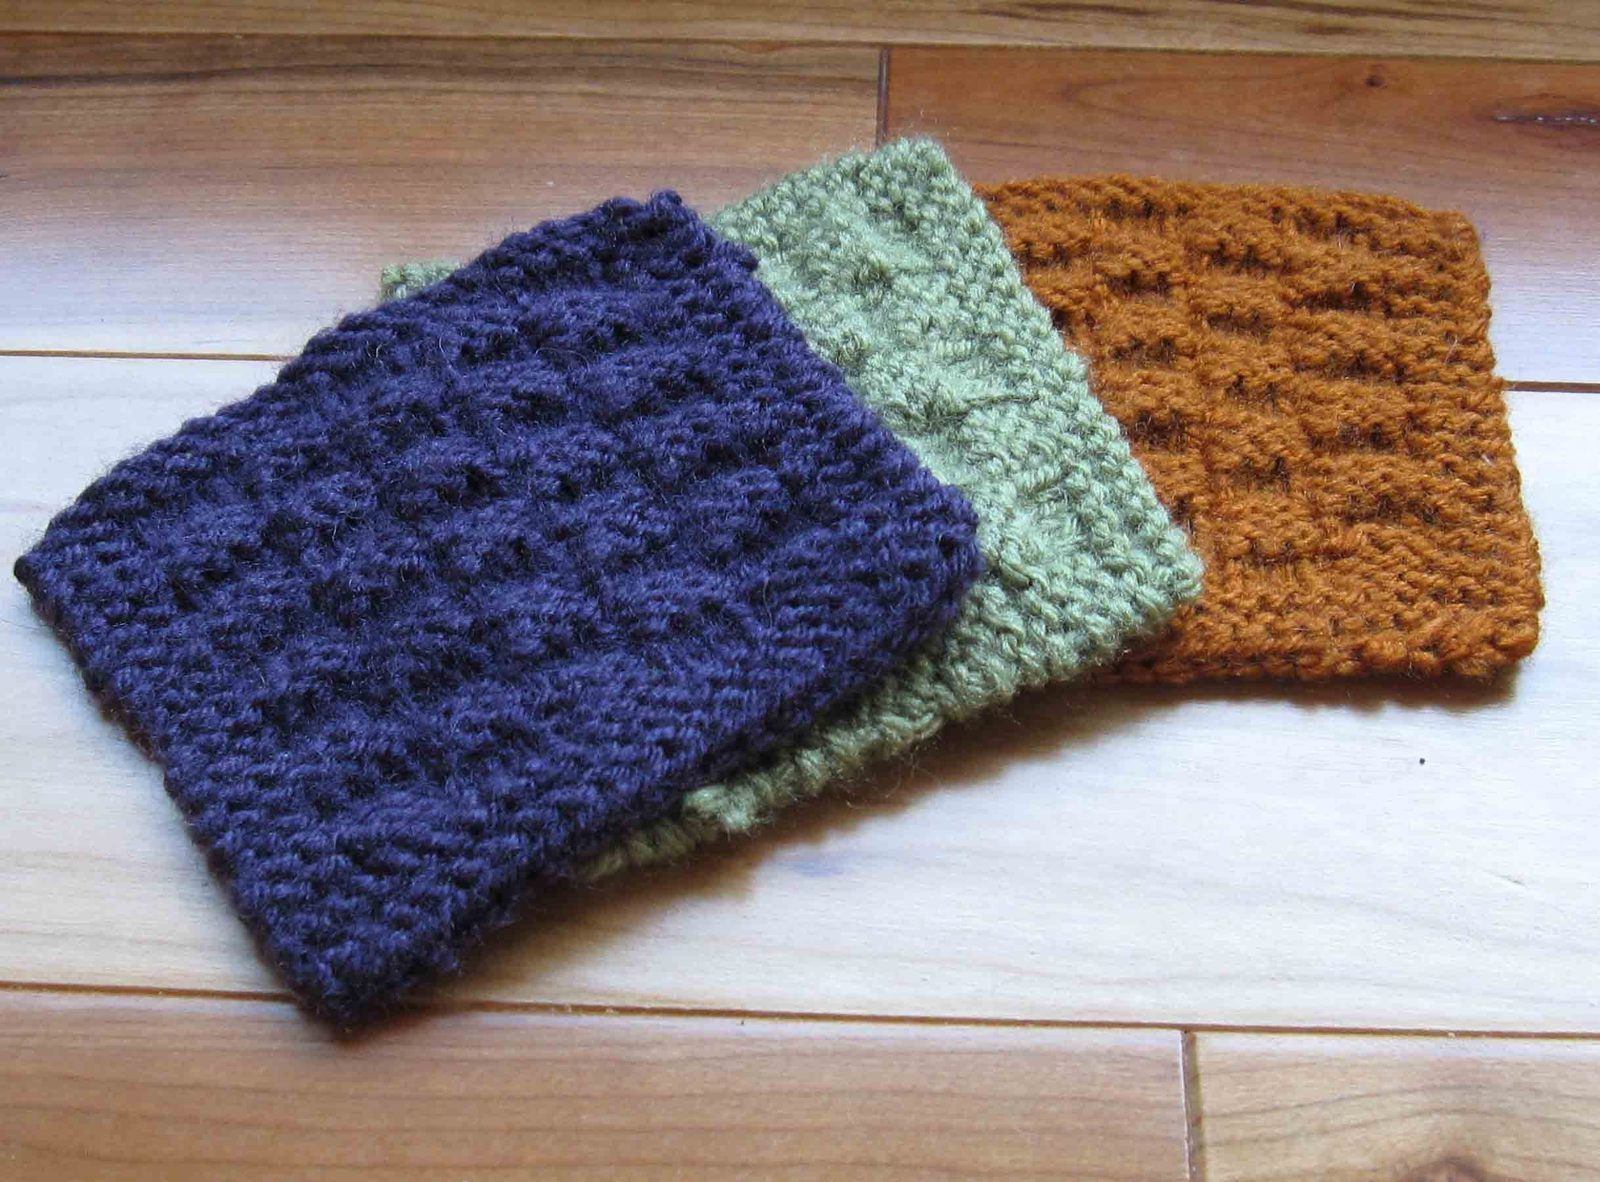 Cute knitted reversible coasters